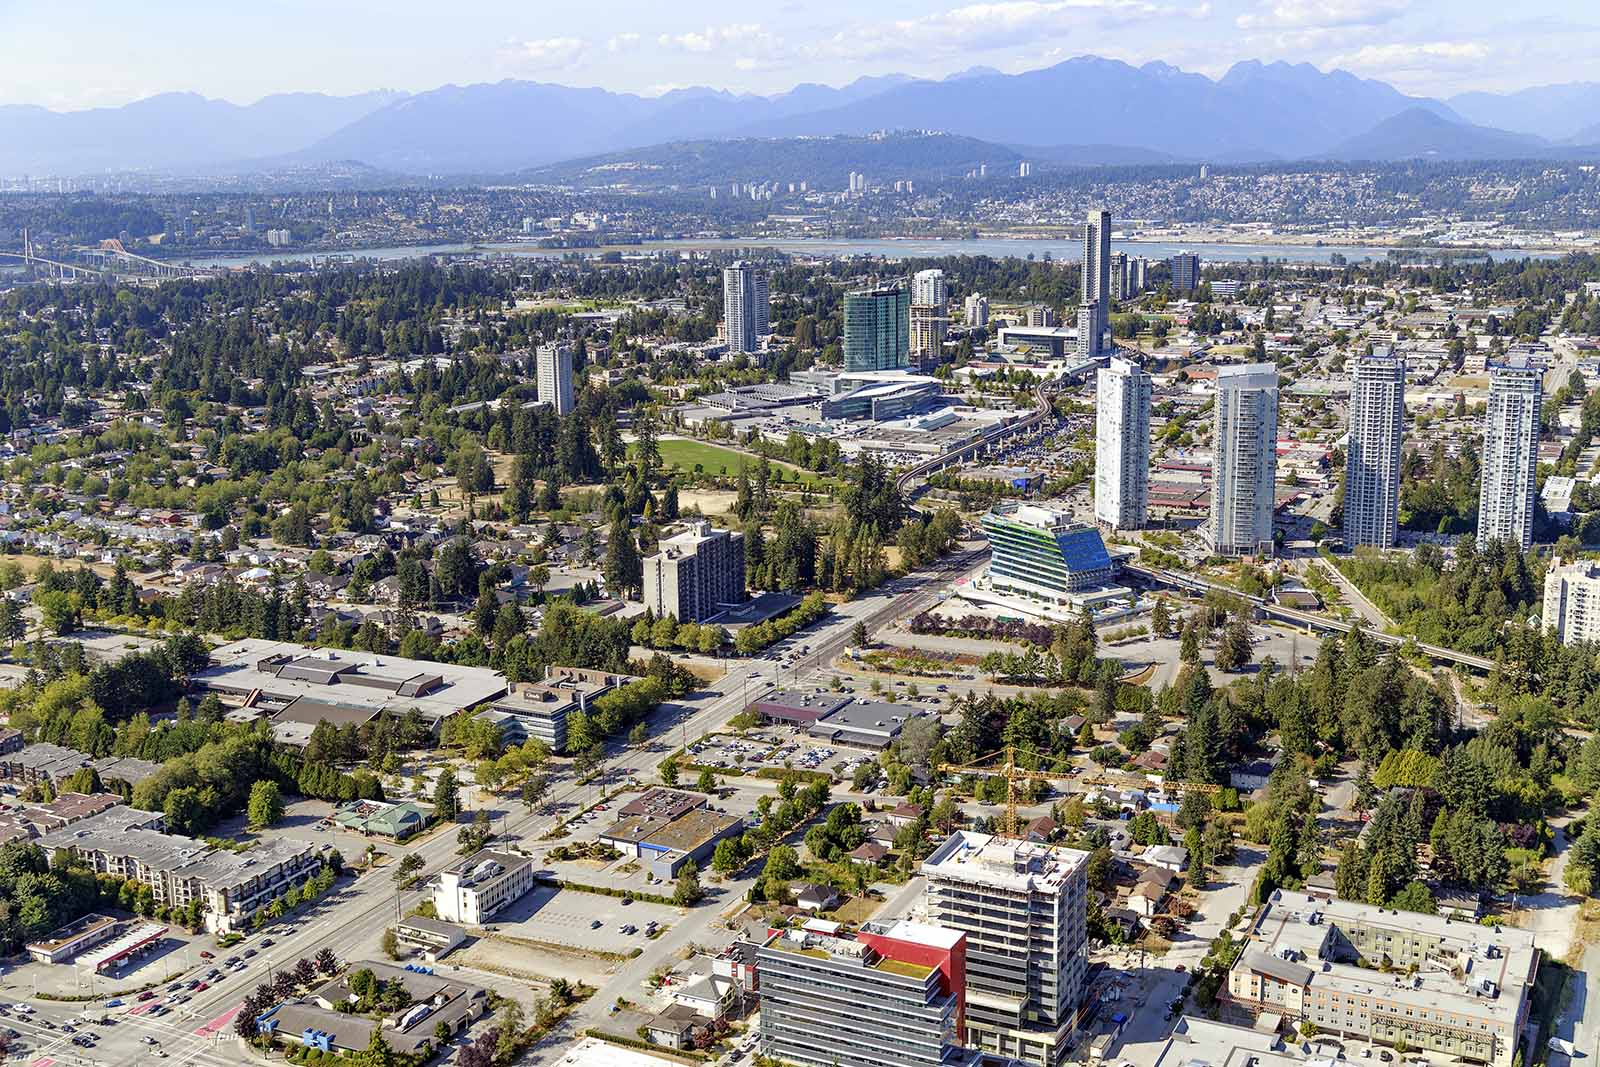 Aerial image of Surrey City Centre, including office towers, residential high-rises, and low-rise commercial/retail centres.